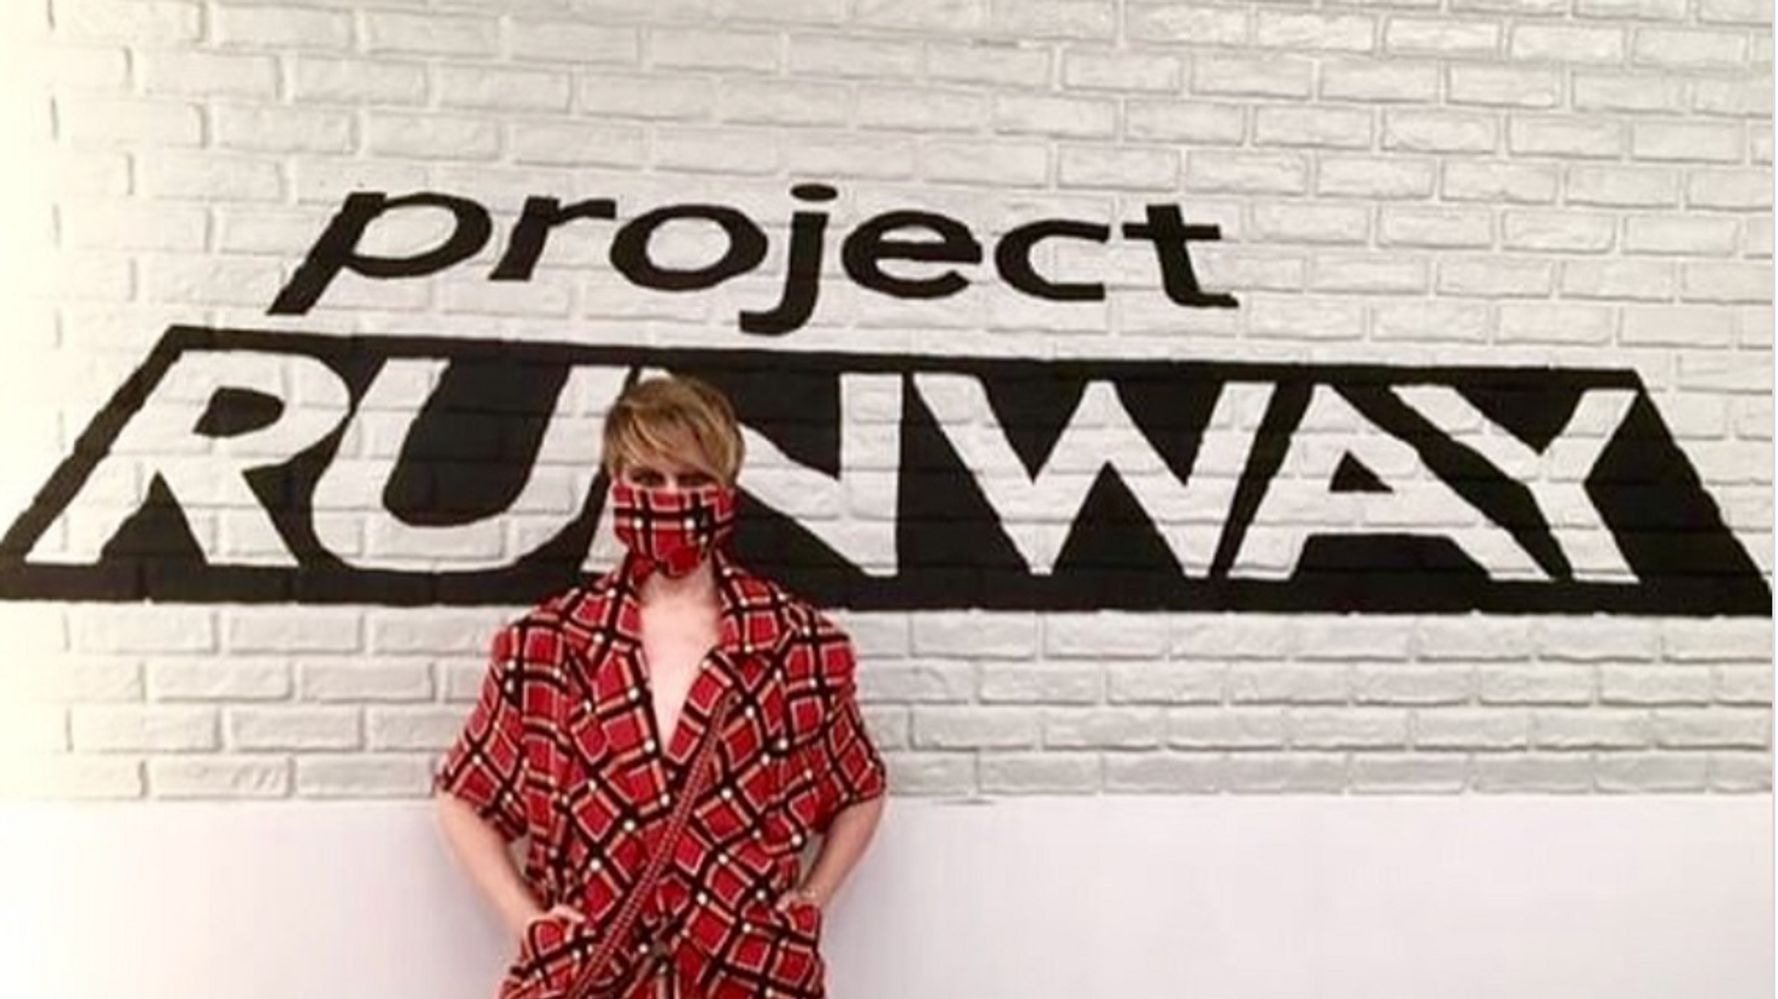 A 2019 'Project Runway' Contestant Named Kovid Who Made Masks Has People Buzzing